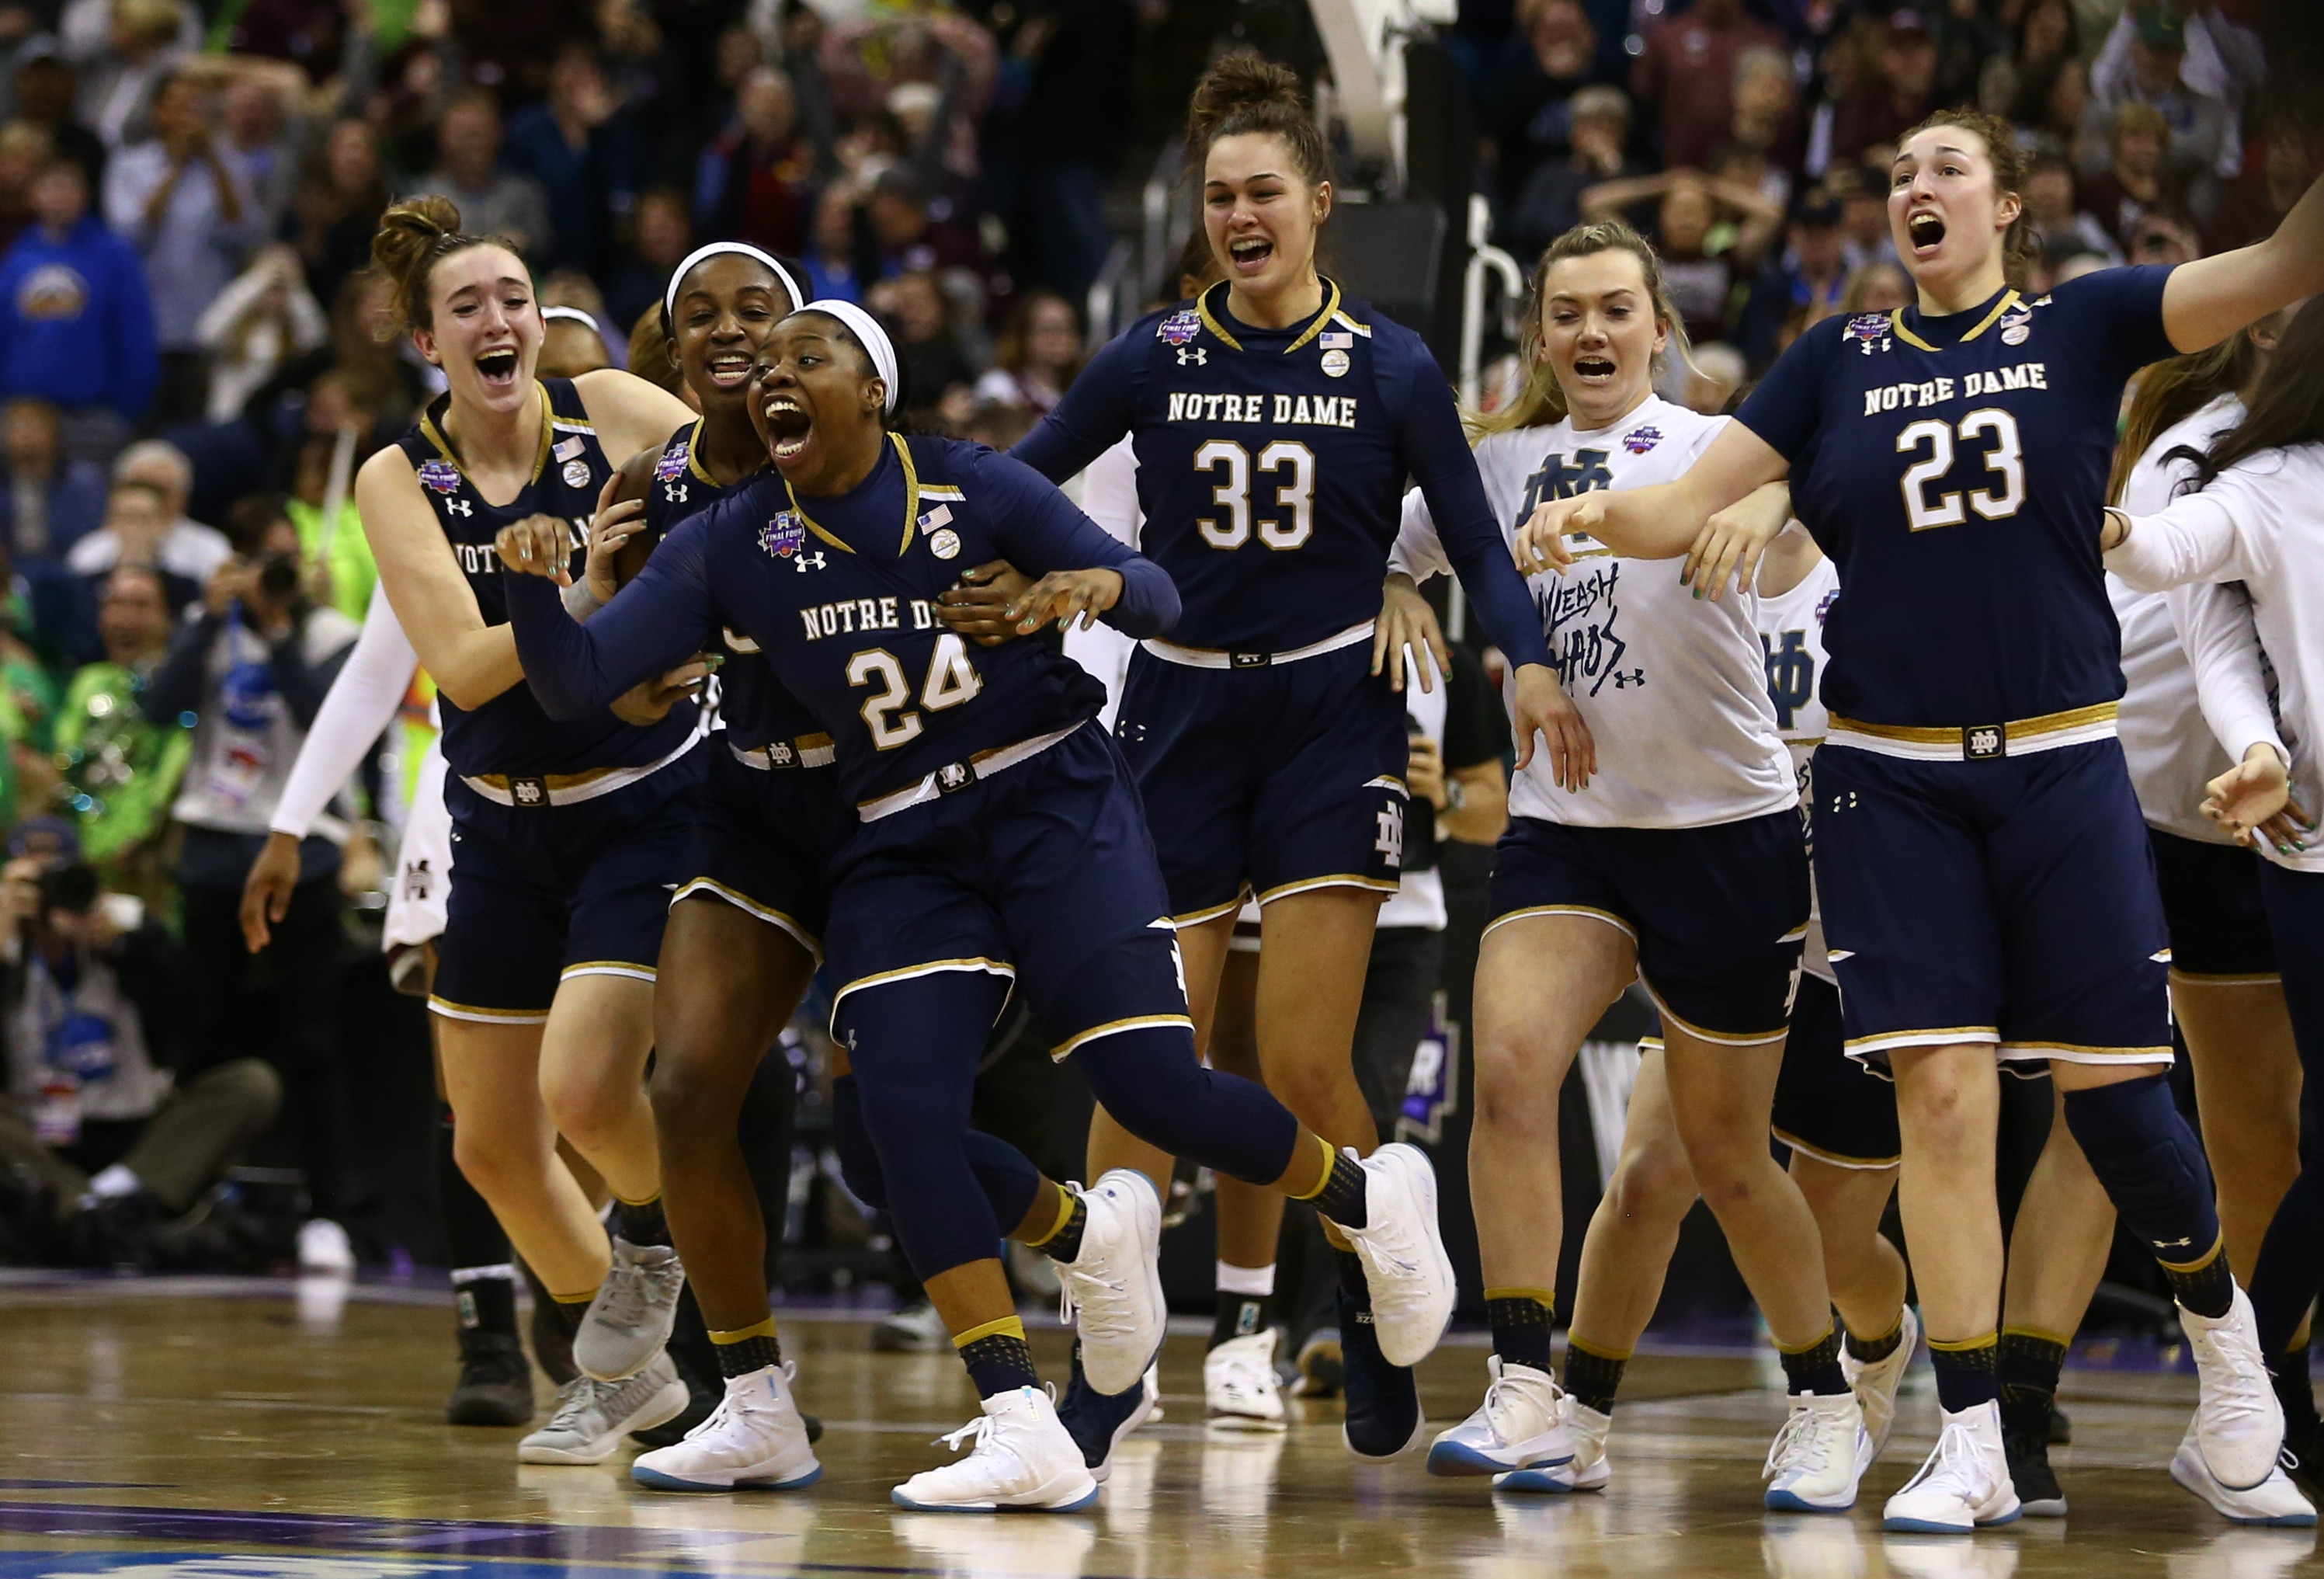 Notre Dame Wins Championship On Ogunbowales Game Winner